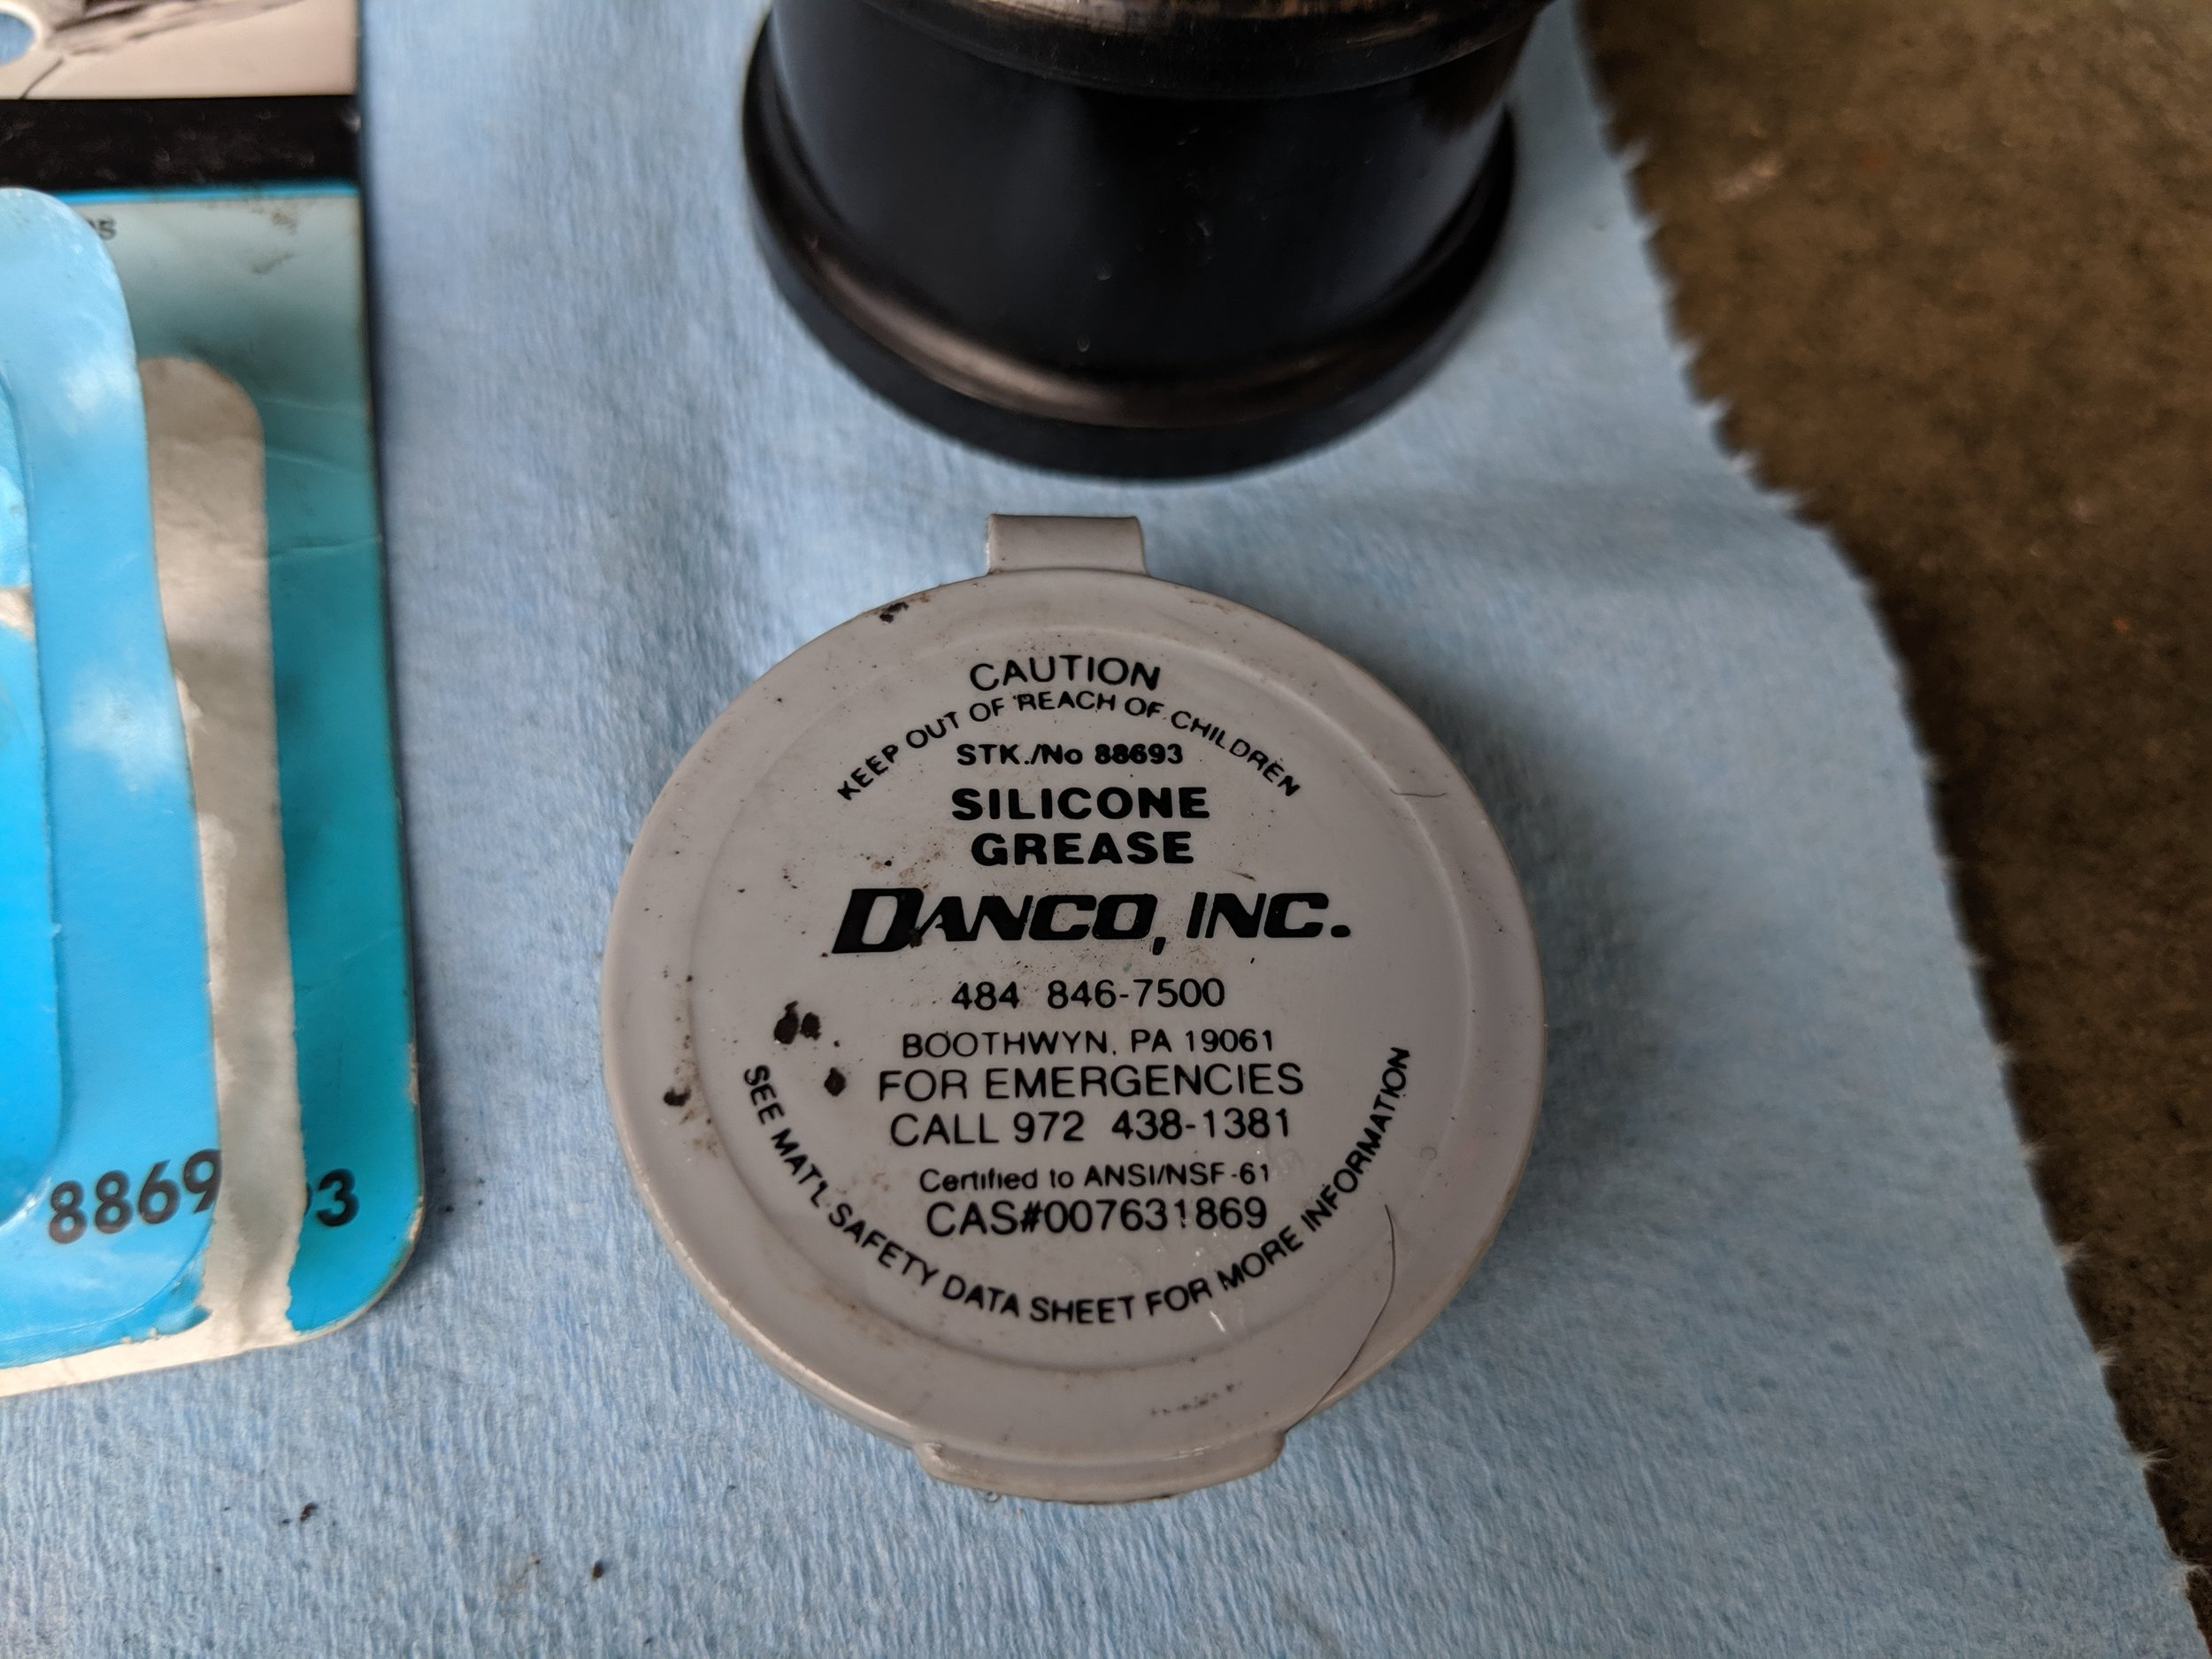 Choose your grease of choice. This grease was highly recommended for my poly bushings to keep squeaking to a minimum, so we will try it in this application.